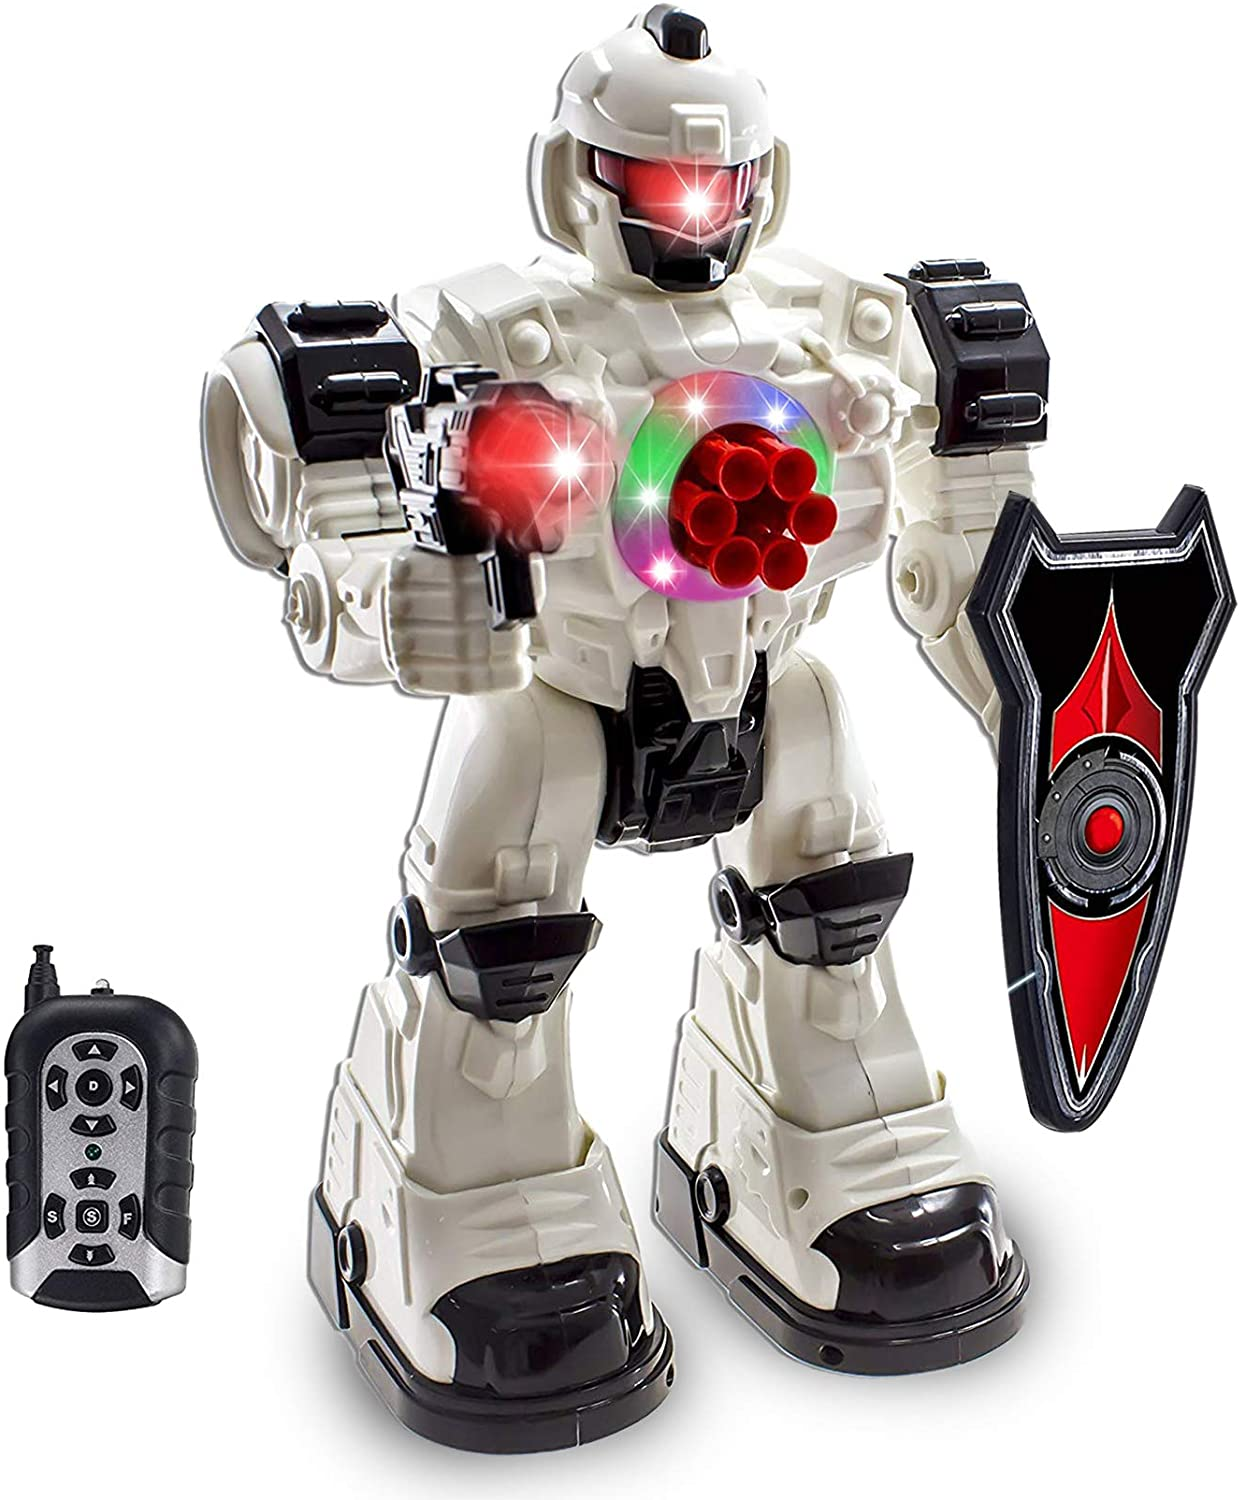 WolVol Remote Control Robot Police Toy